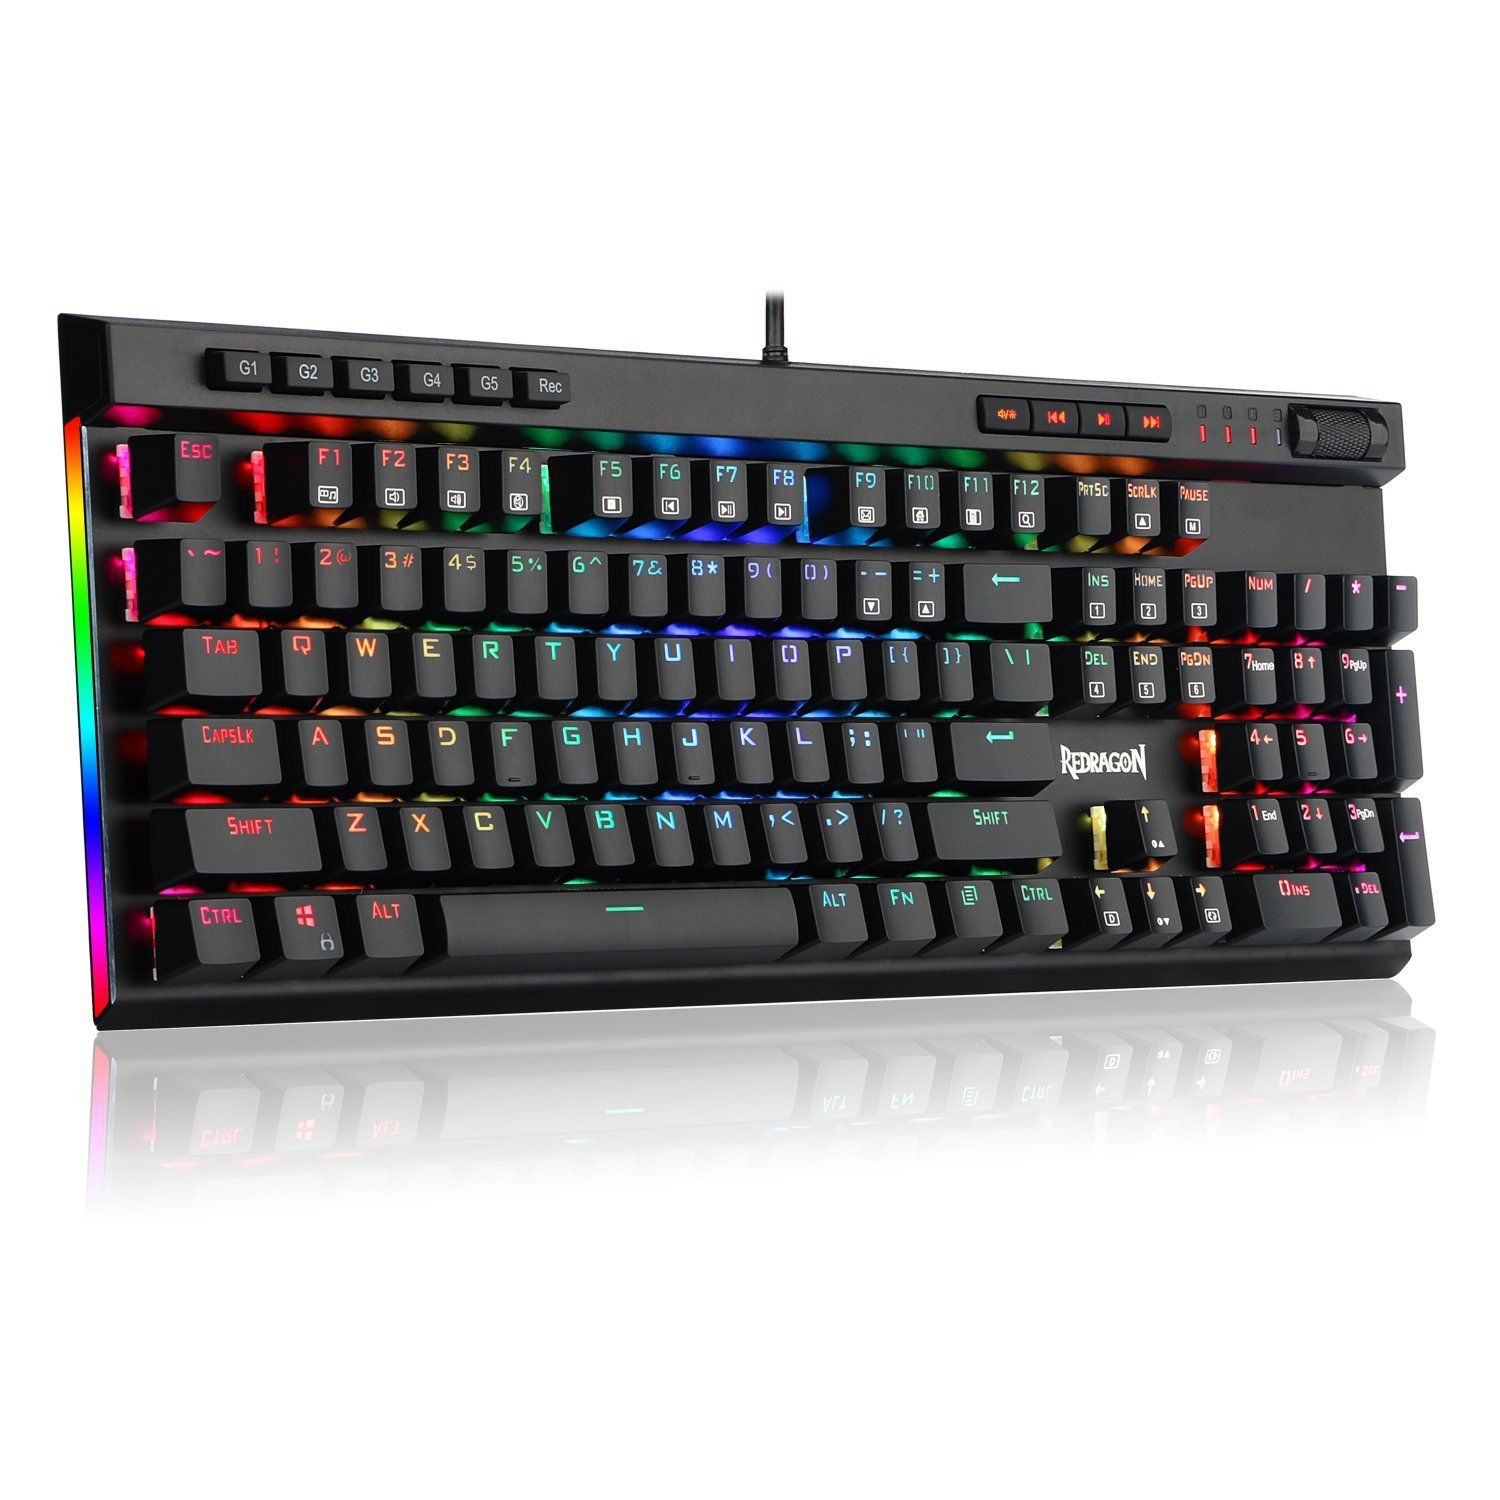 Redragon K580 VATA RGB LED Backlit Mechanical Gaming Keyboard 104 Keys Anti-ghosting with Macro Keys & Dedicated Media Controls, Onboard Macro Recording (Blue Switches)